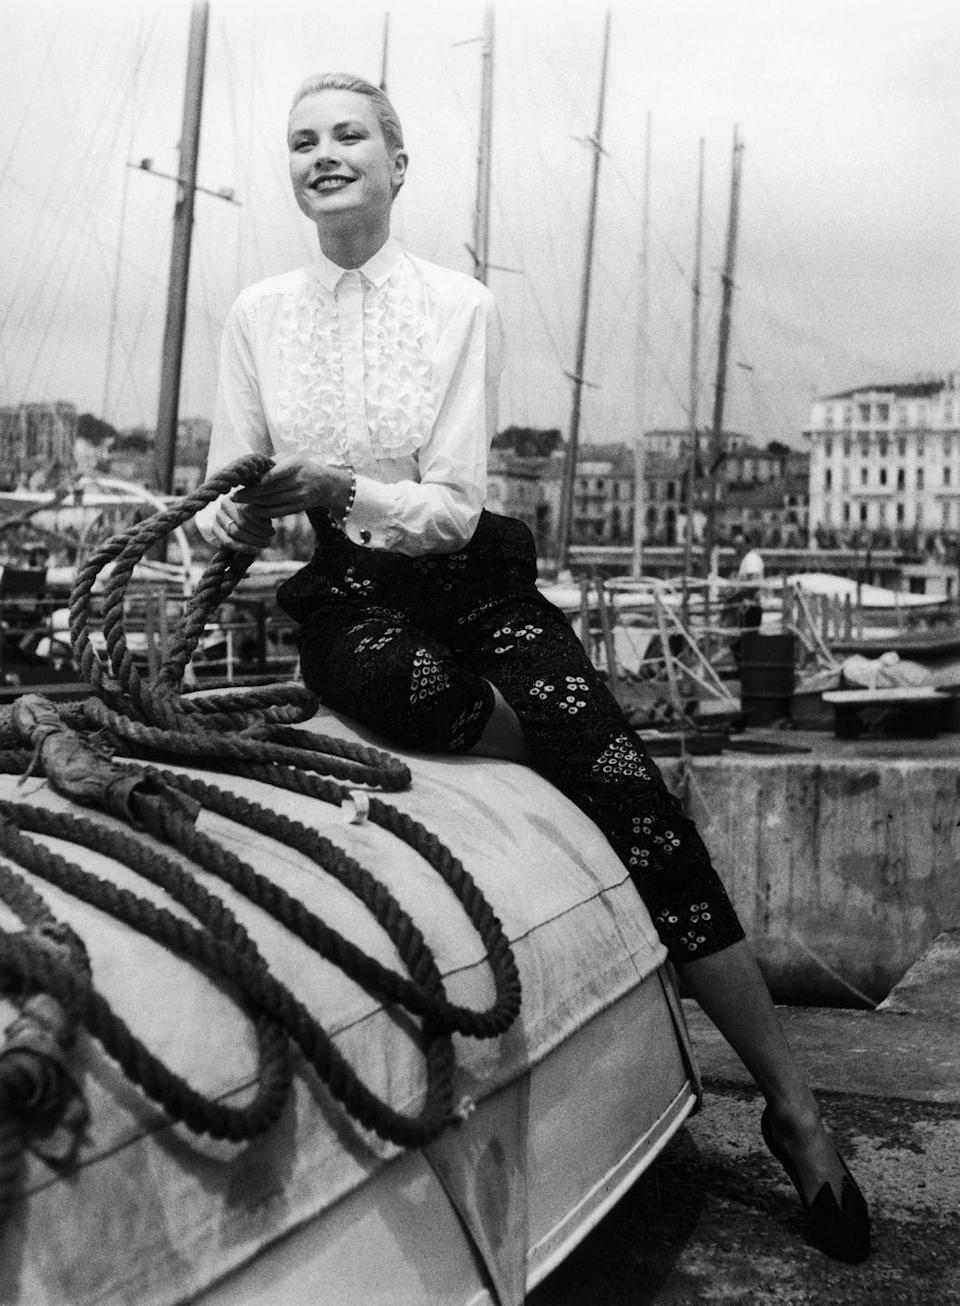 <p>Kelly explores the docks in France, as she arrives in Cannes for the annual film festival. The actress looks polished in a ruffled button-down shirt and black printed cigarette pants. </p>